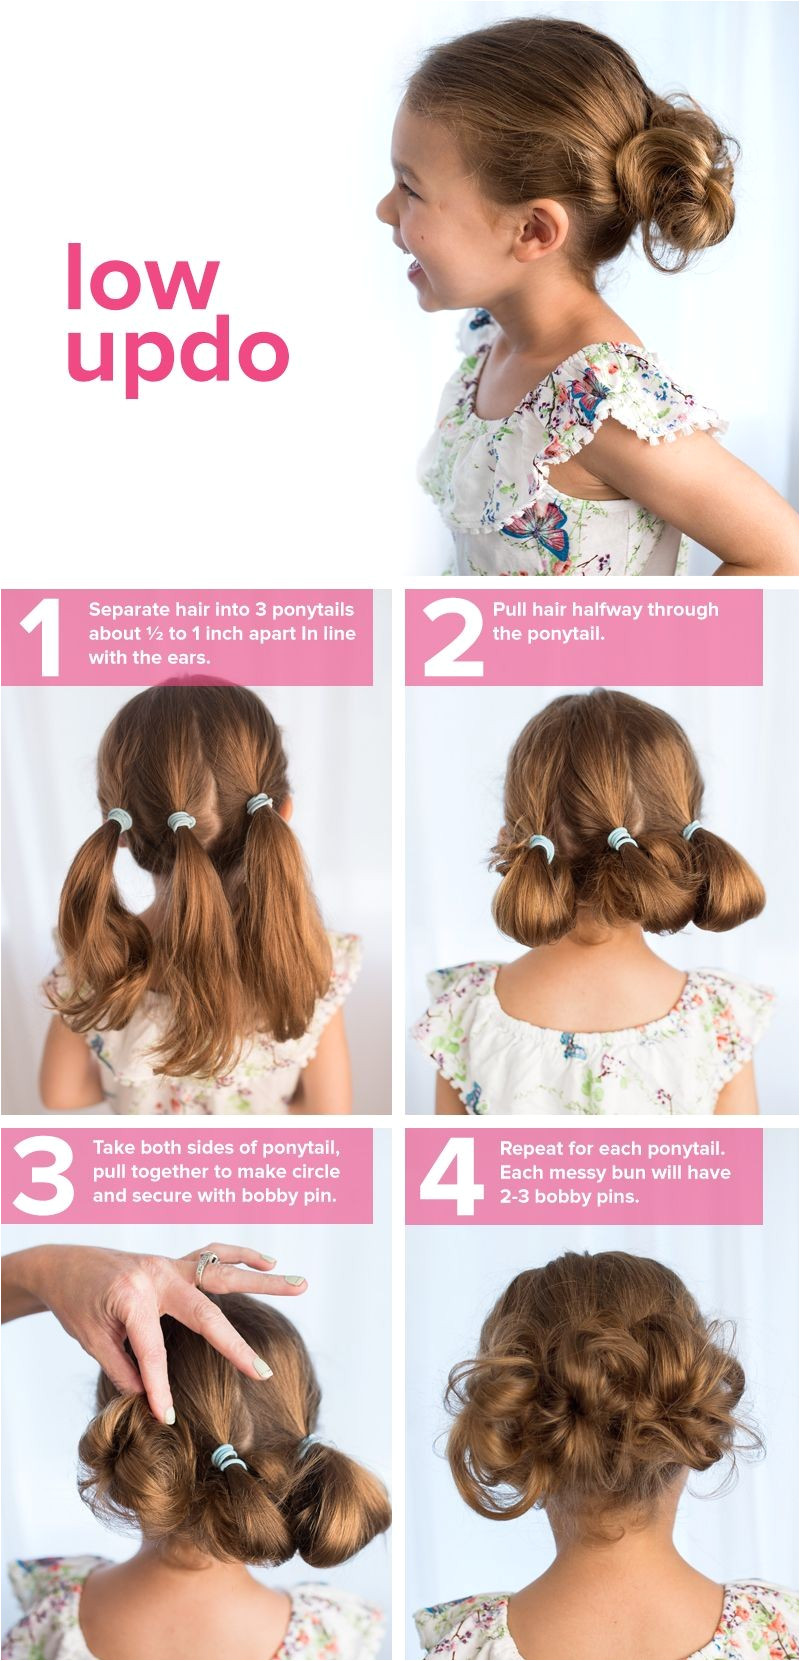 Cool Hairstyles for Girls with Long Hair for School Lovely 5 Fast Easy Cute Hairstyles for